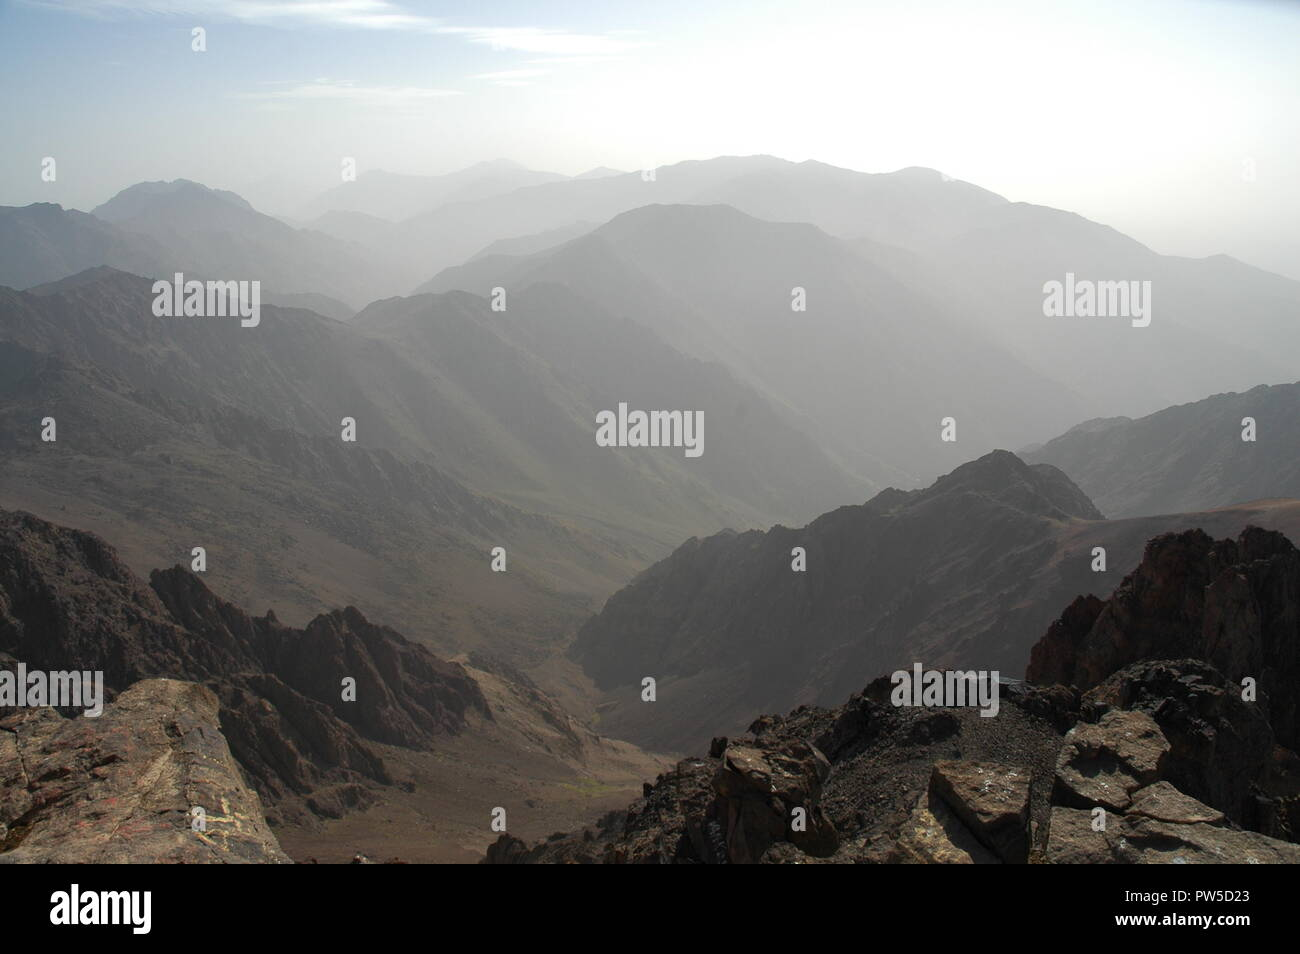 A Mountain View From The Top Stock Photo 222010827 Alamy